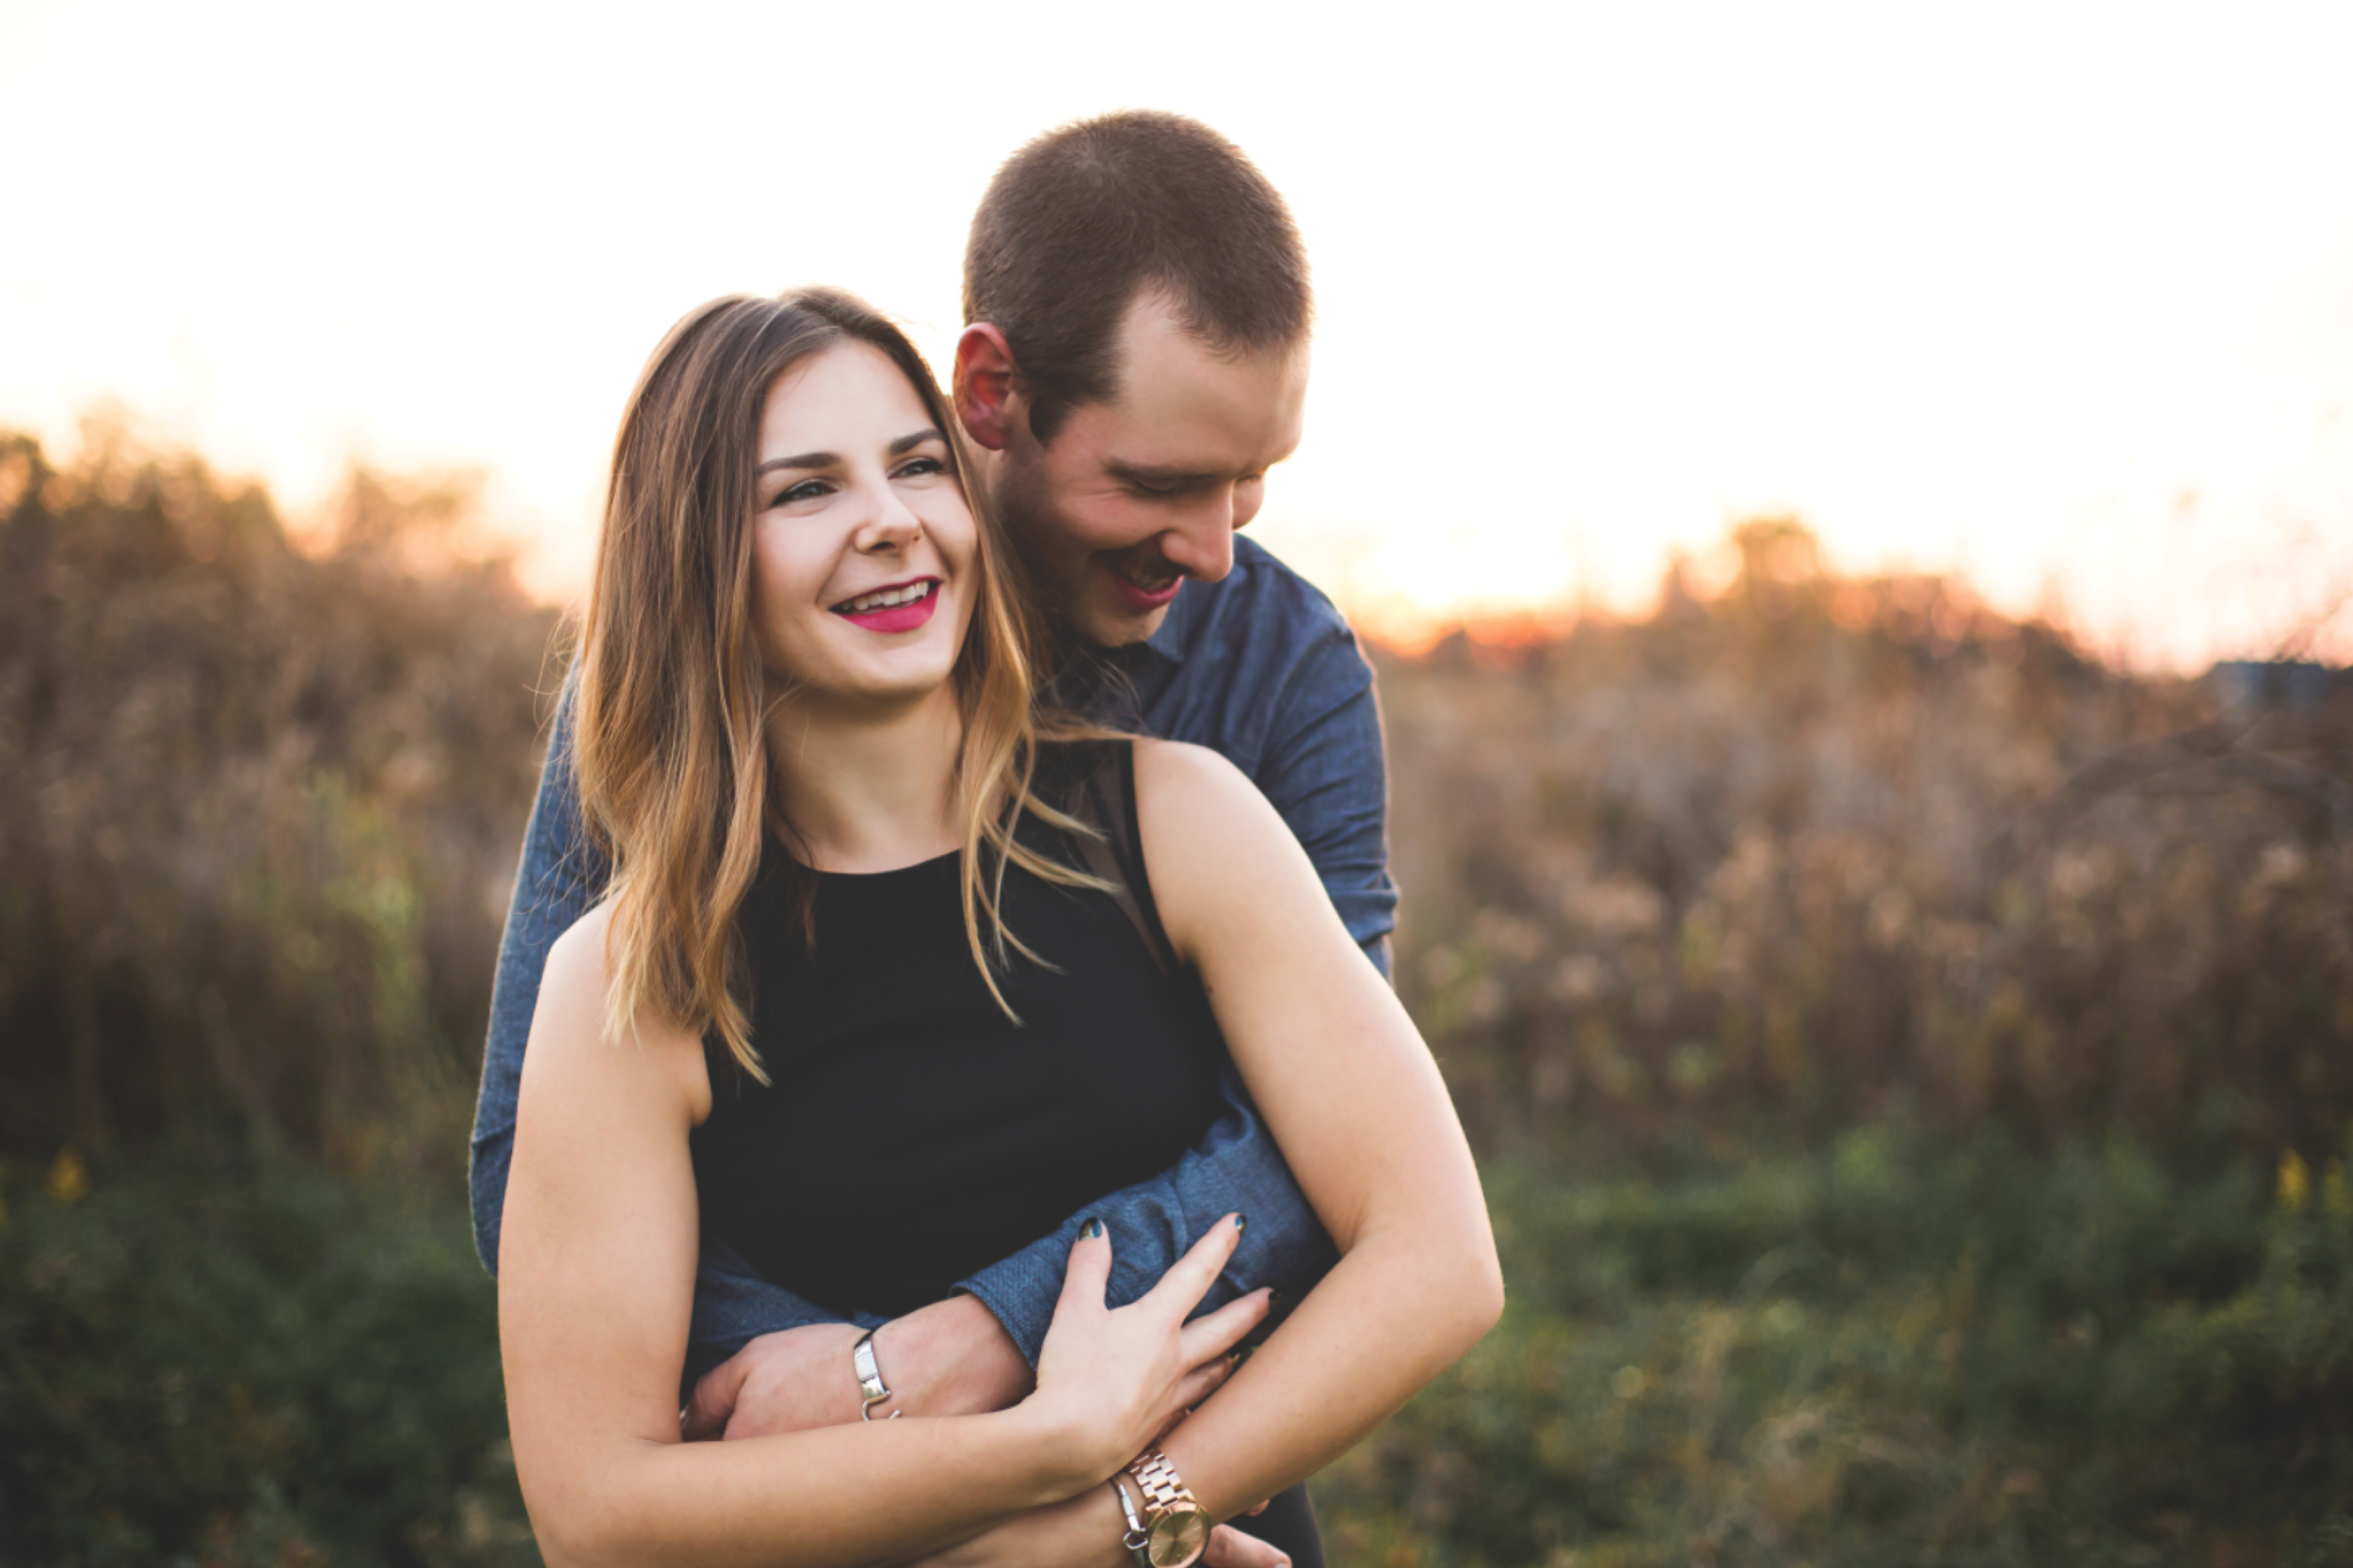 Engagement-Session-Brantford-Hamilton-Burlington-Oakville-Niagara-Toronto-Wedding-Photographer-Engaged-Photography-Golden-Hour-Moments-by-Lauren-Photo-Image-9.png